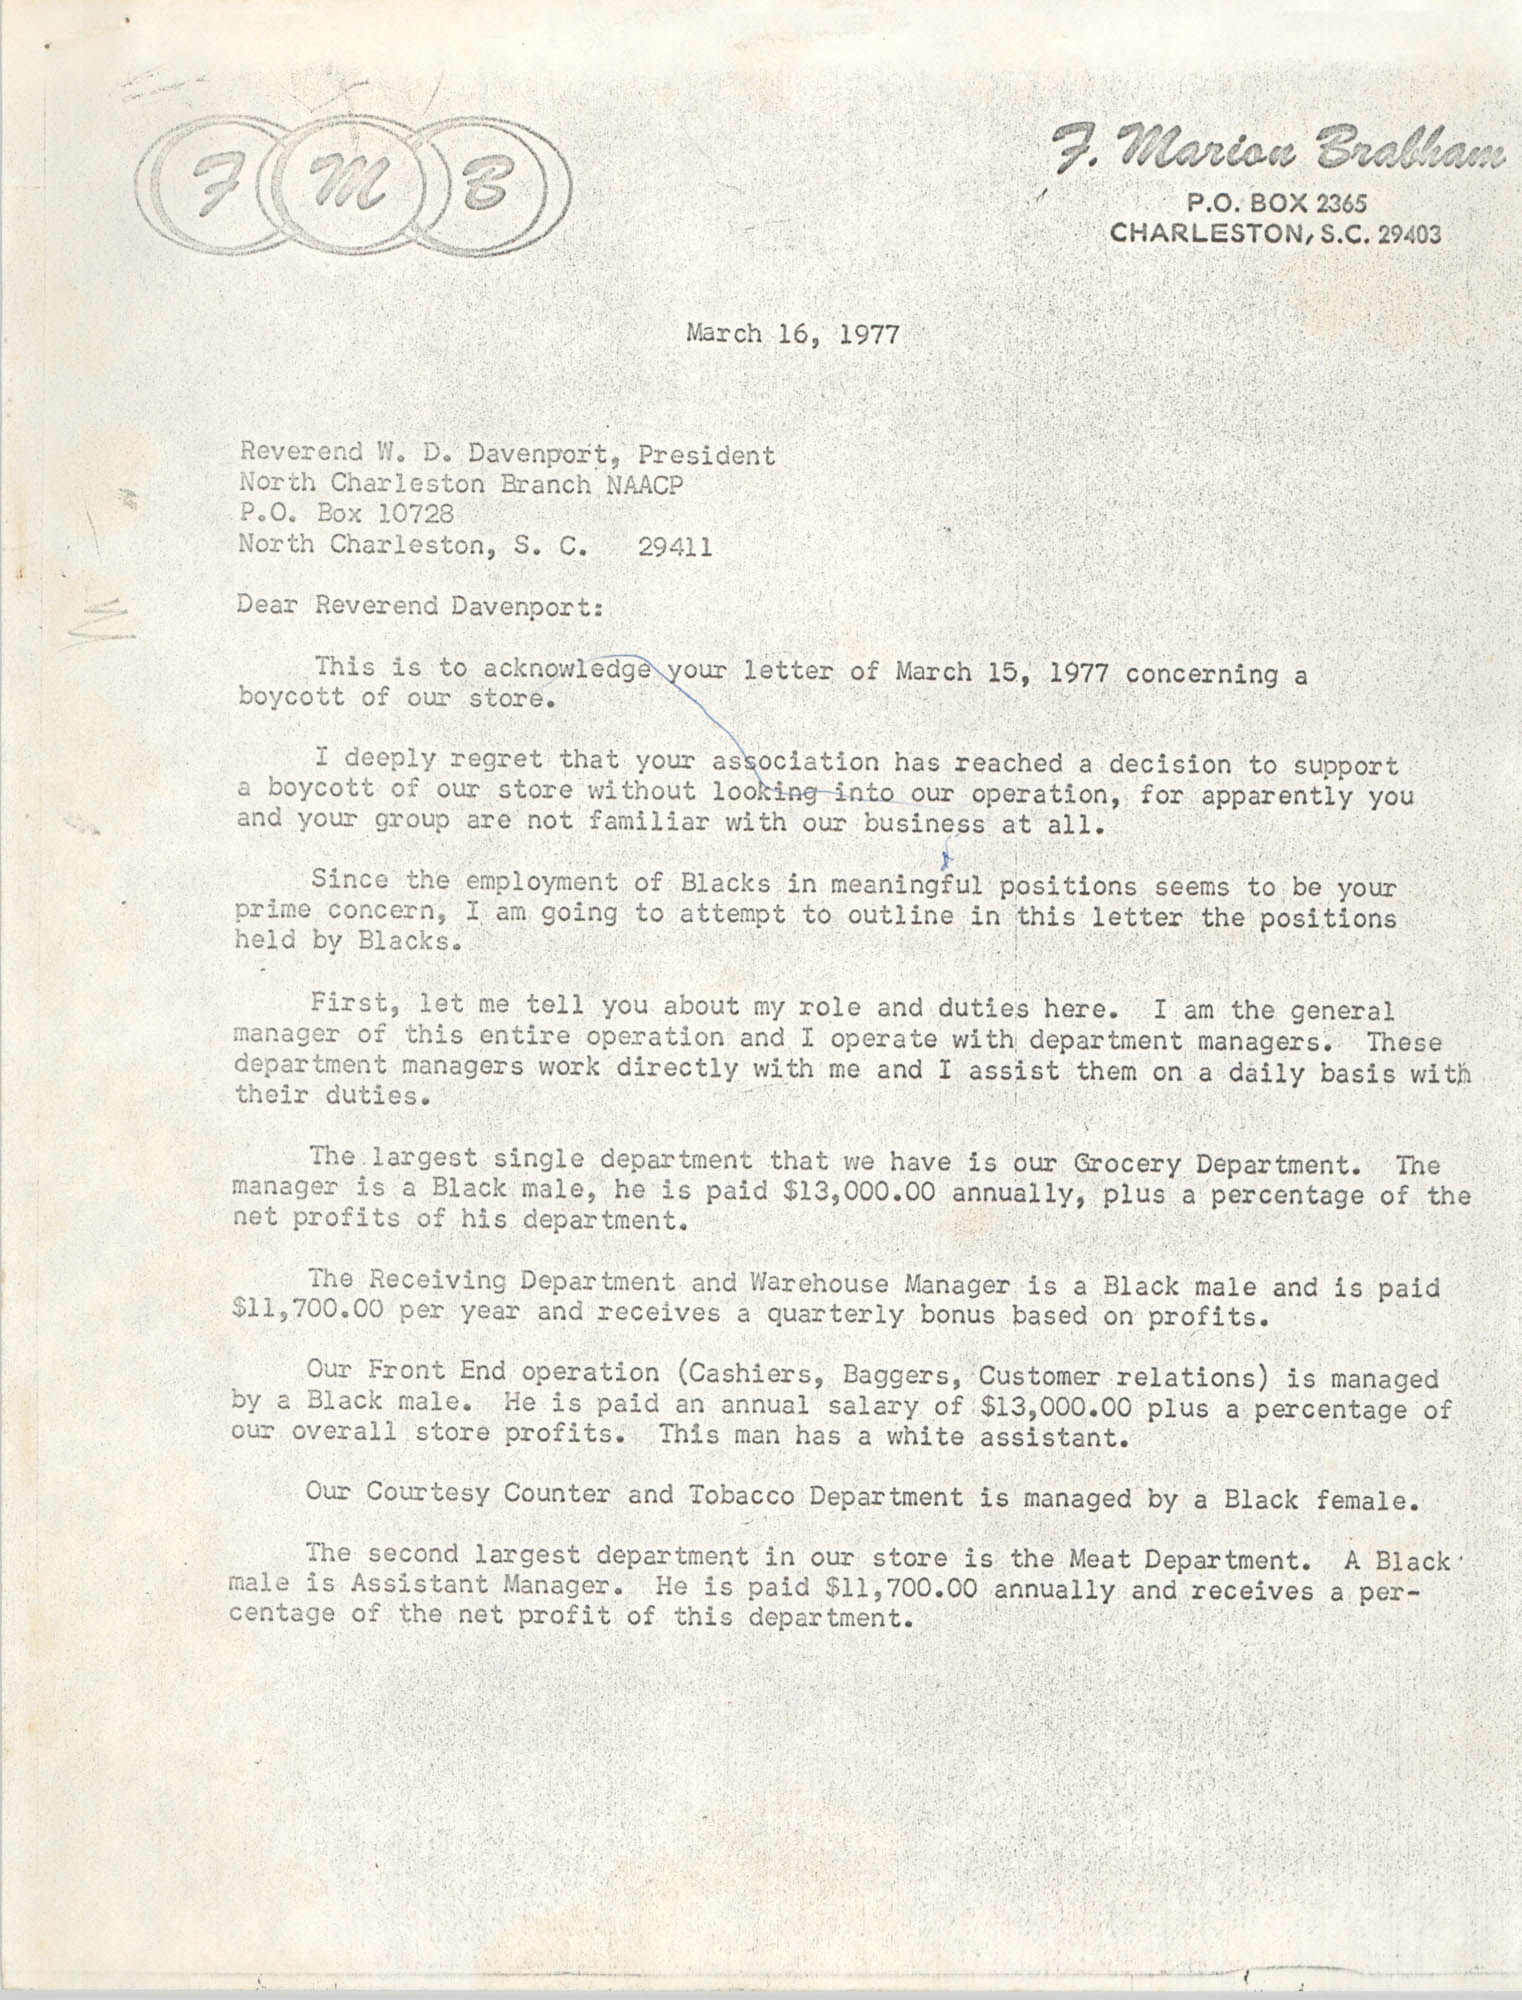 Letter from F. Marion Brabham to Reverend W. D. Davenport, March 16, 1977